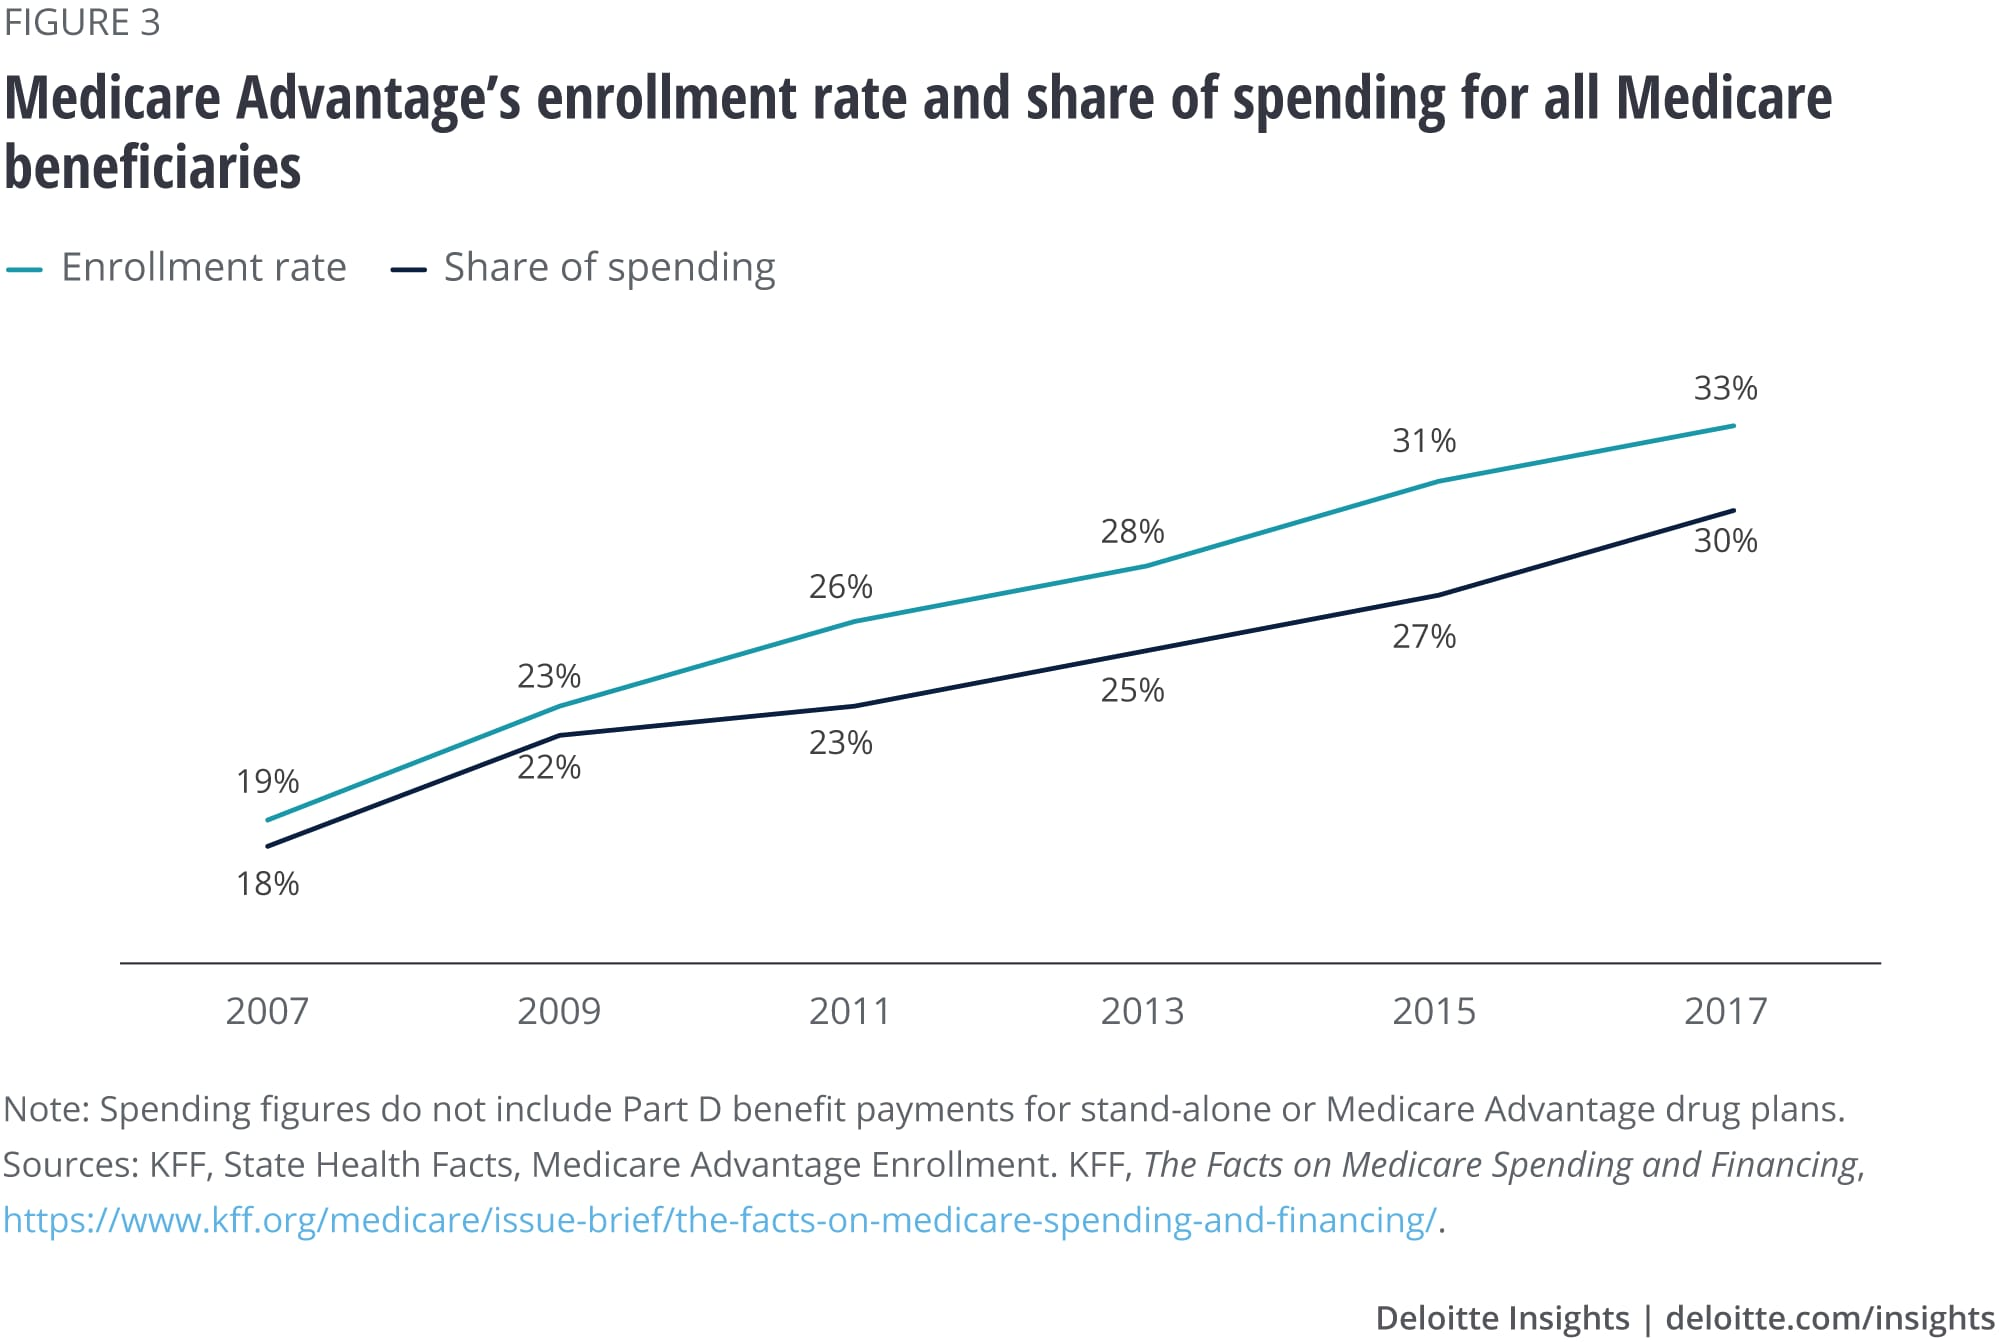 Medicare Advantage's enrollment rate and share of spending for all Medicare beneficiaries